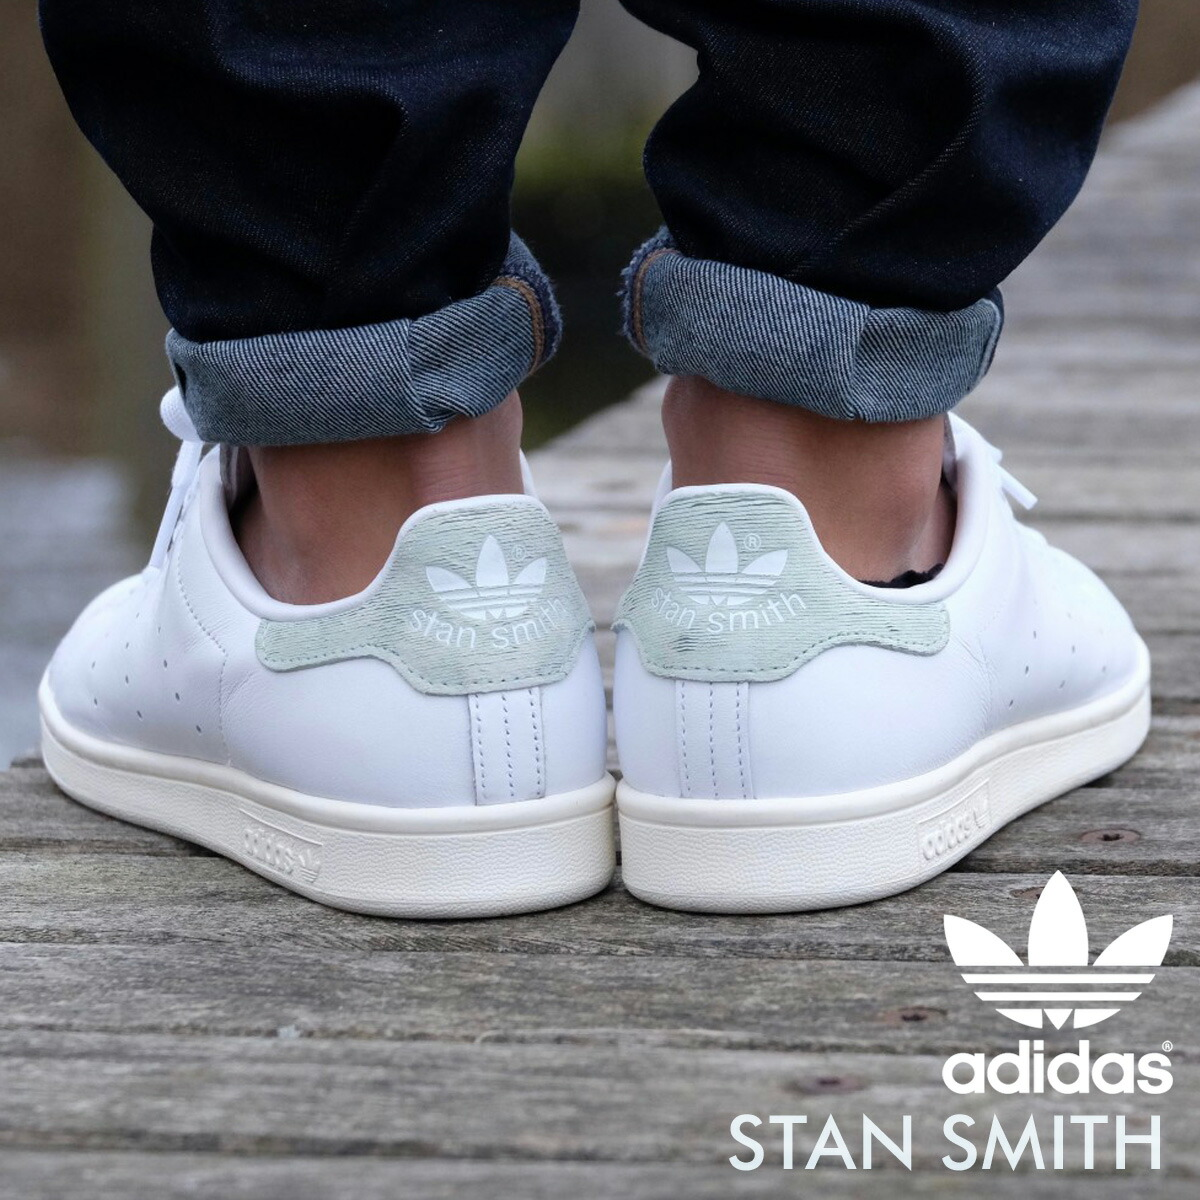 competitive price a9e30 c4e8f adidas Stan Smith Adidas originals sneakers STAN SMITH Lady's men BB5047  shoes white [7/21 Shinnyu load] [177]